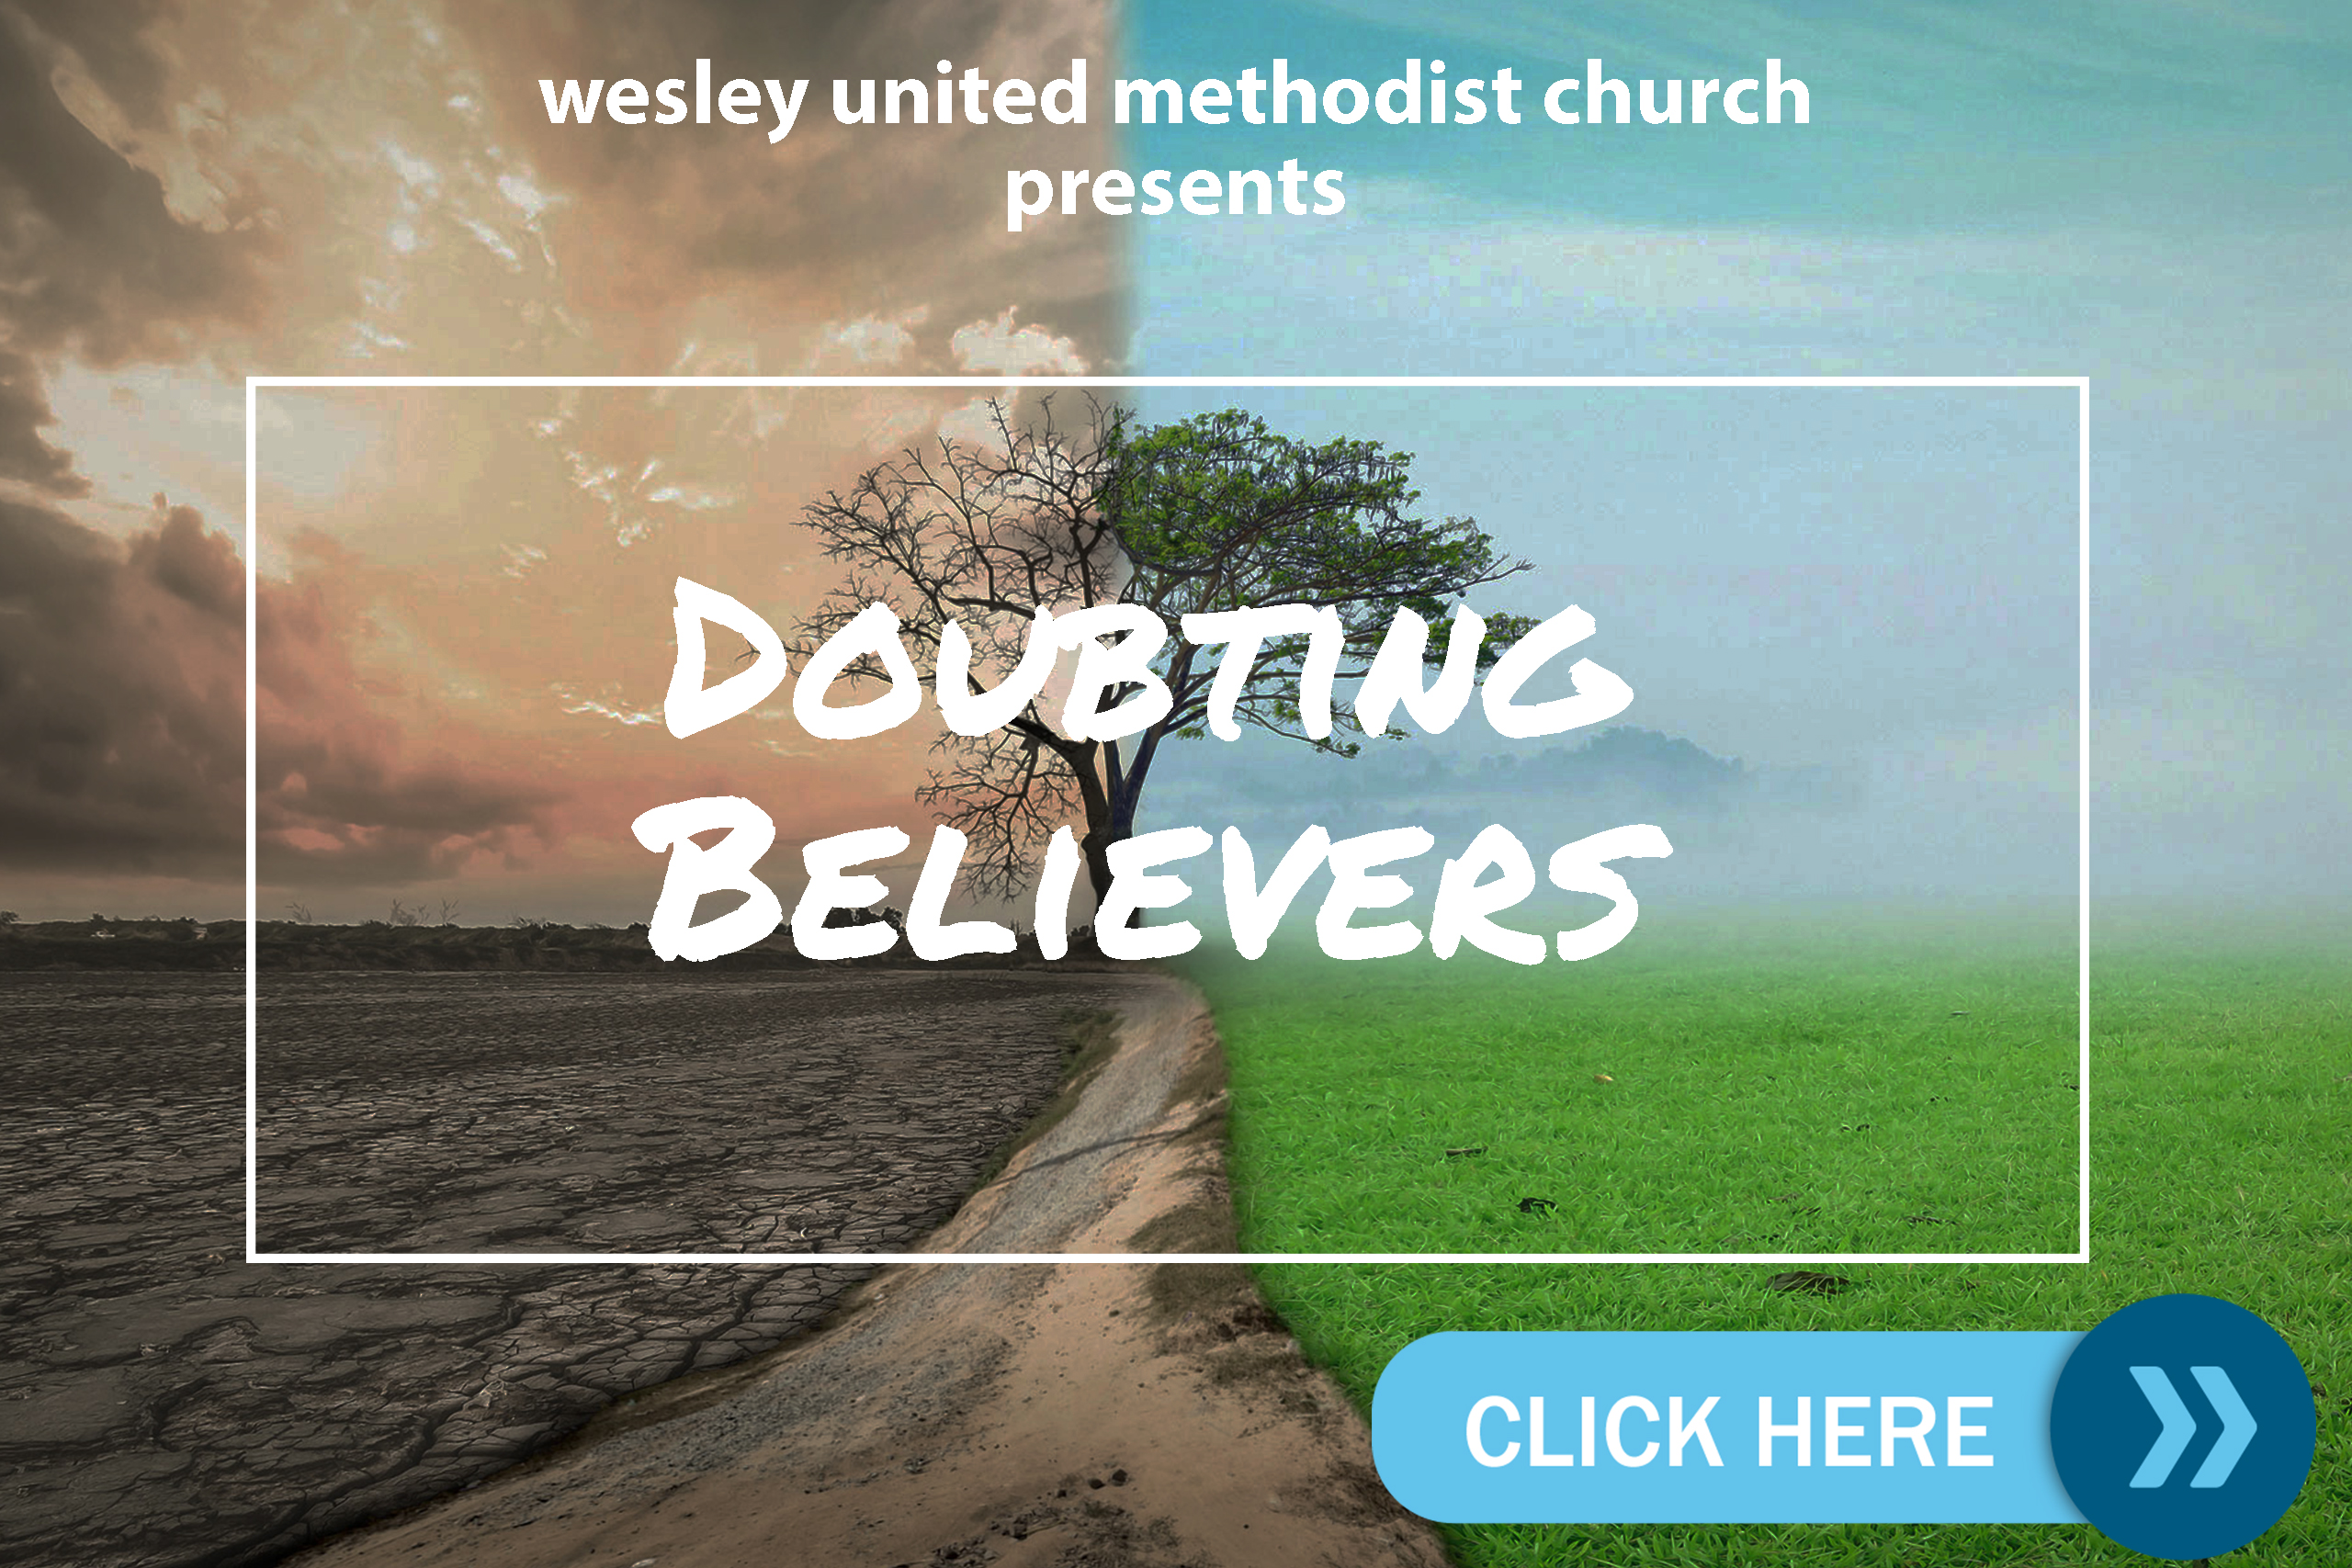 Doubting Believers Recovered-Recovered-Recovered-Recovered-Recovered-Recovered4B904F68BA67CE7C8449C40D3C0A1C92-Recovered-Recovered